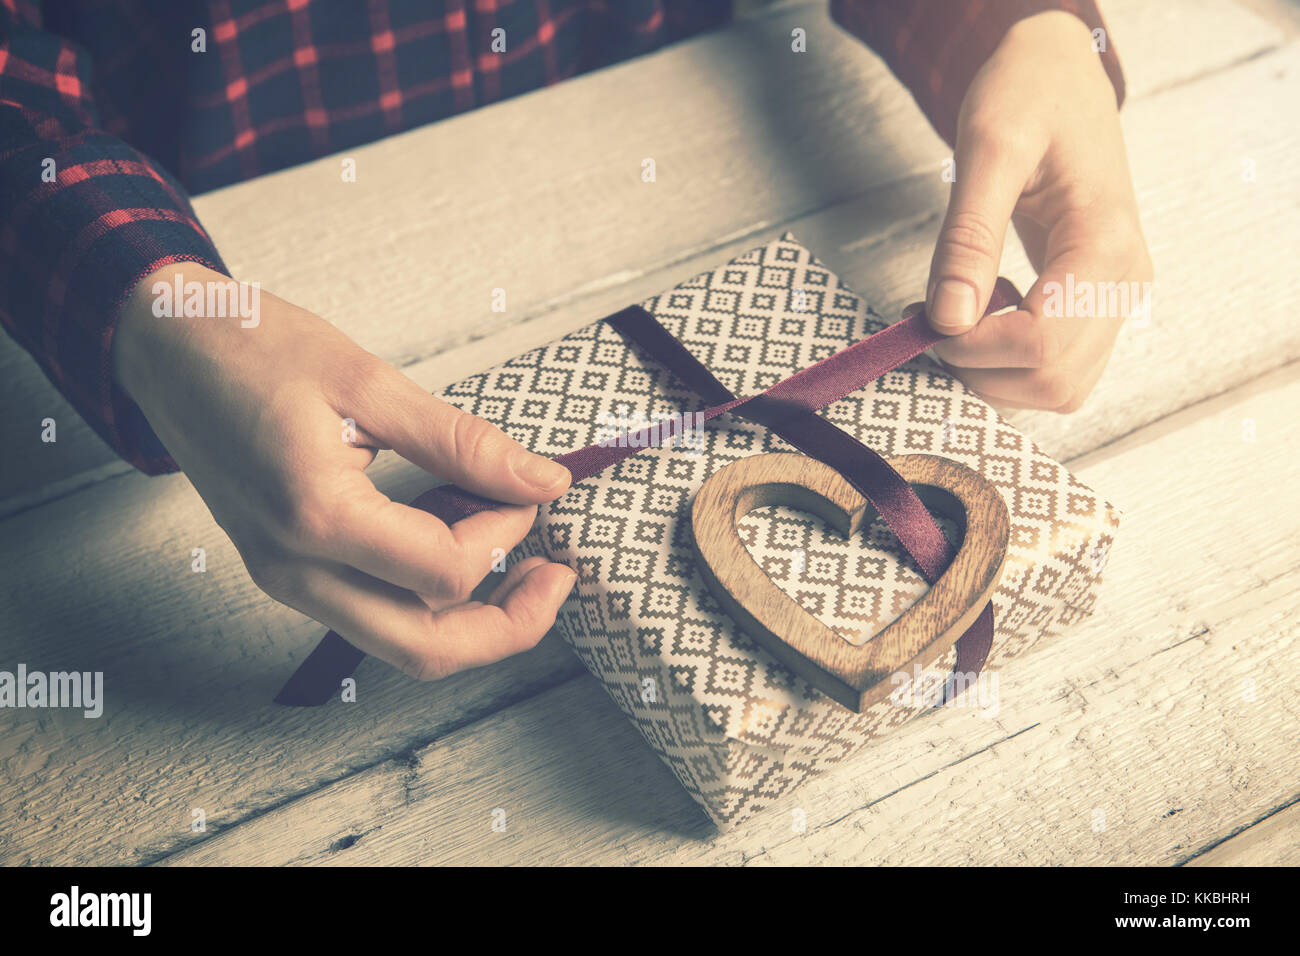 woman wrapping a gift for beloved. tying a ribbon bow with wooden heart decor - Stock Image